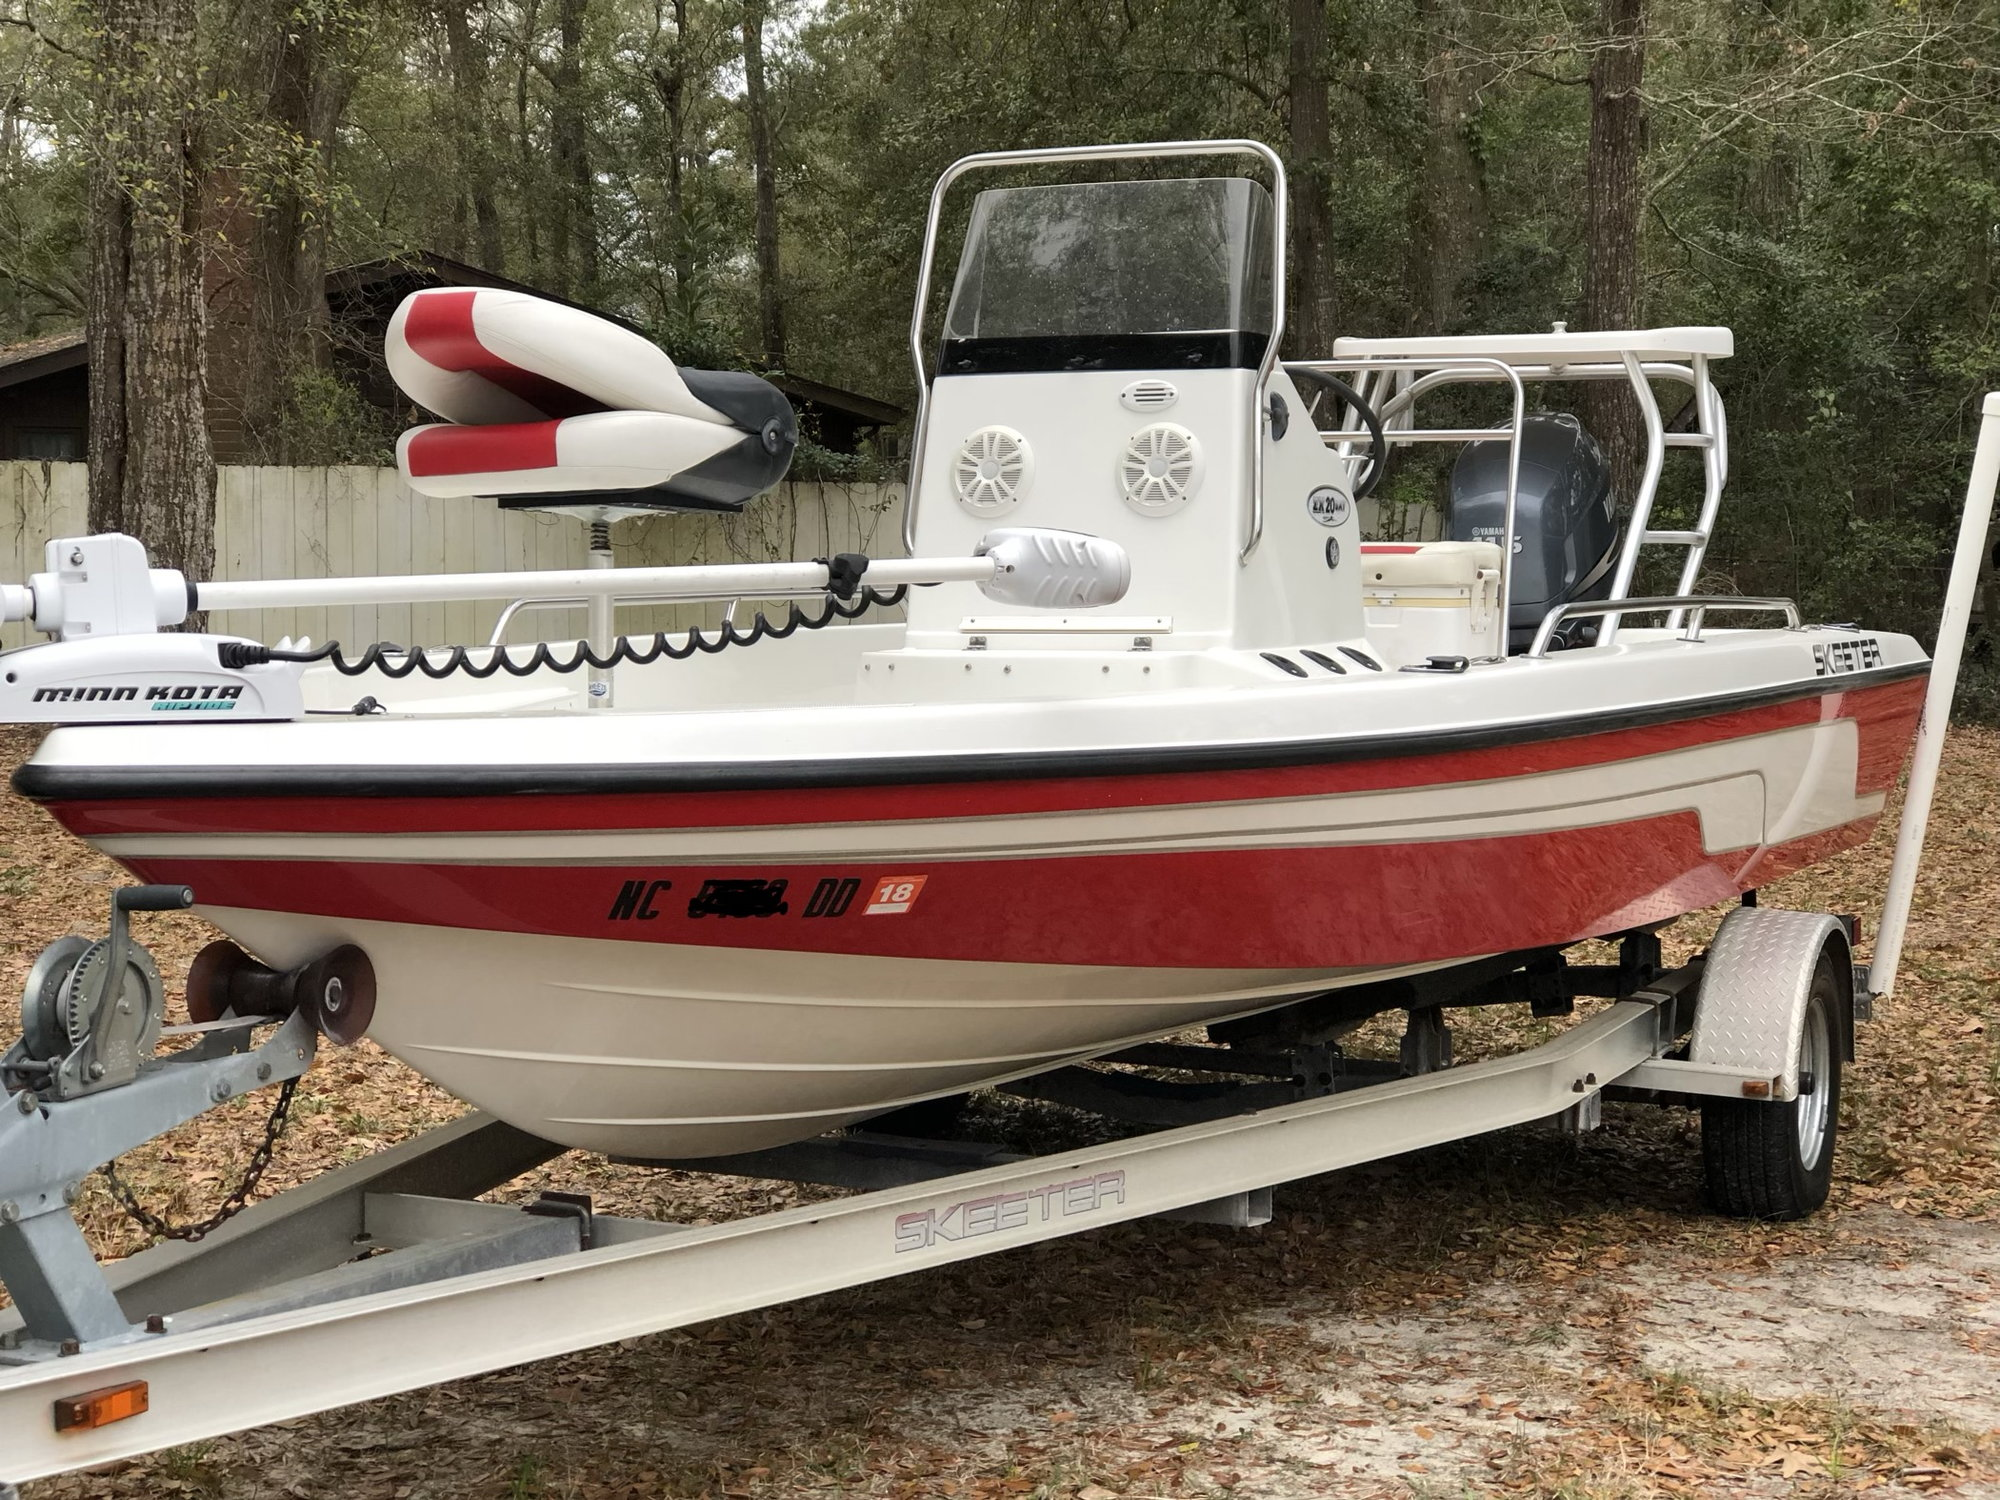 2005 Skeeter Zx20 Bay Sold        - The Hull Truth